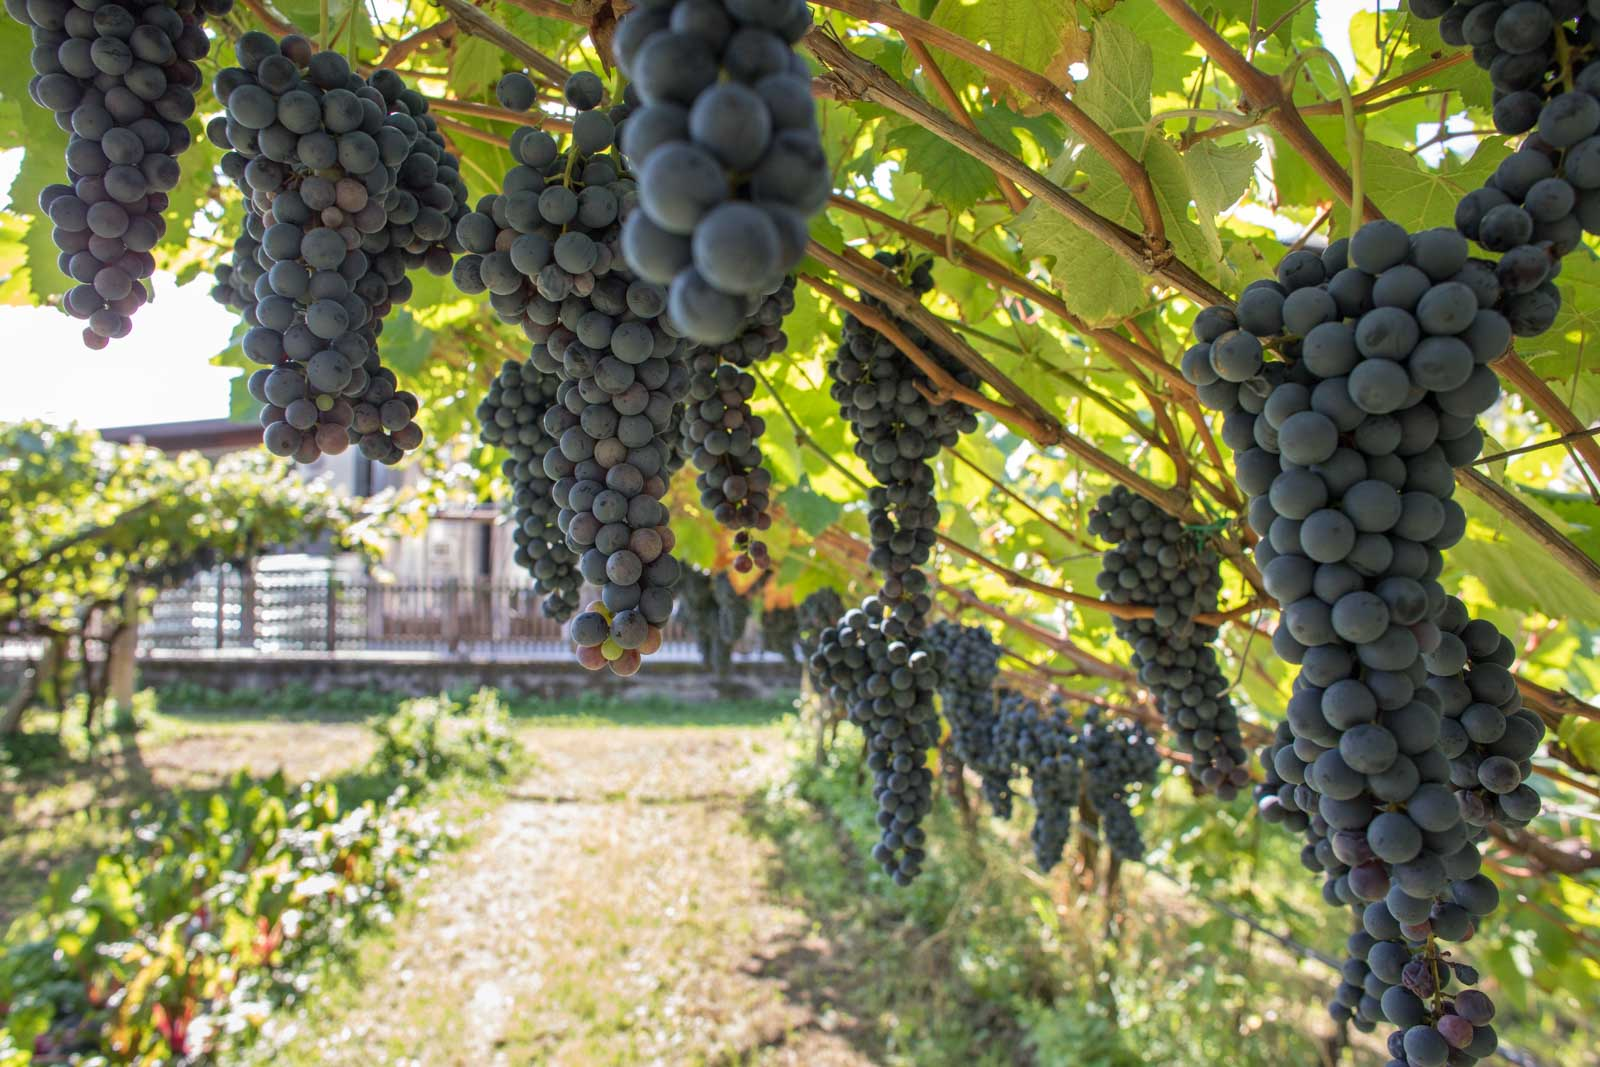 The pergola-trained Teroldego grapes at Foradori — a treasure trove of genetic material for planting other vineyards. ©Kevin Day/Opening a Bottle